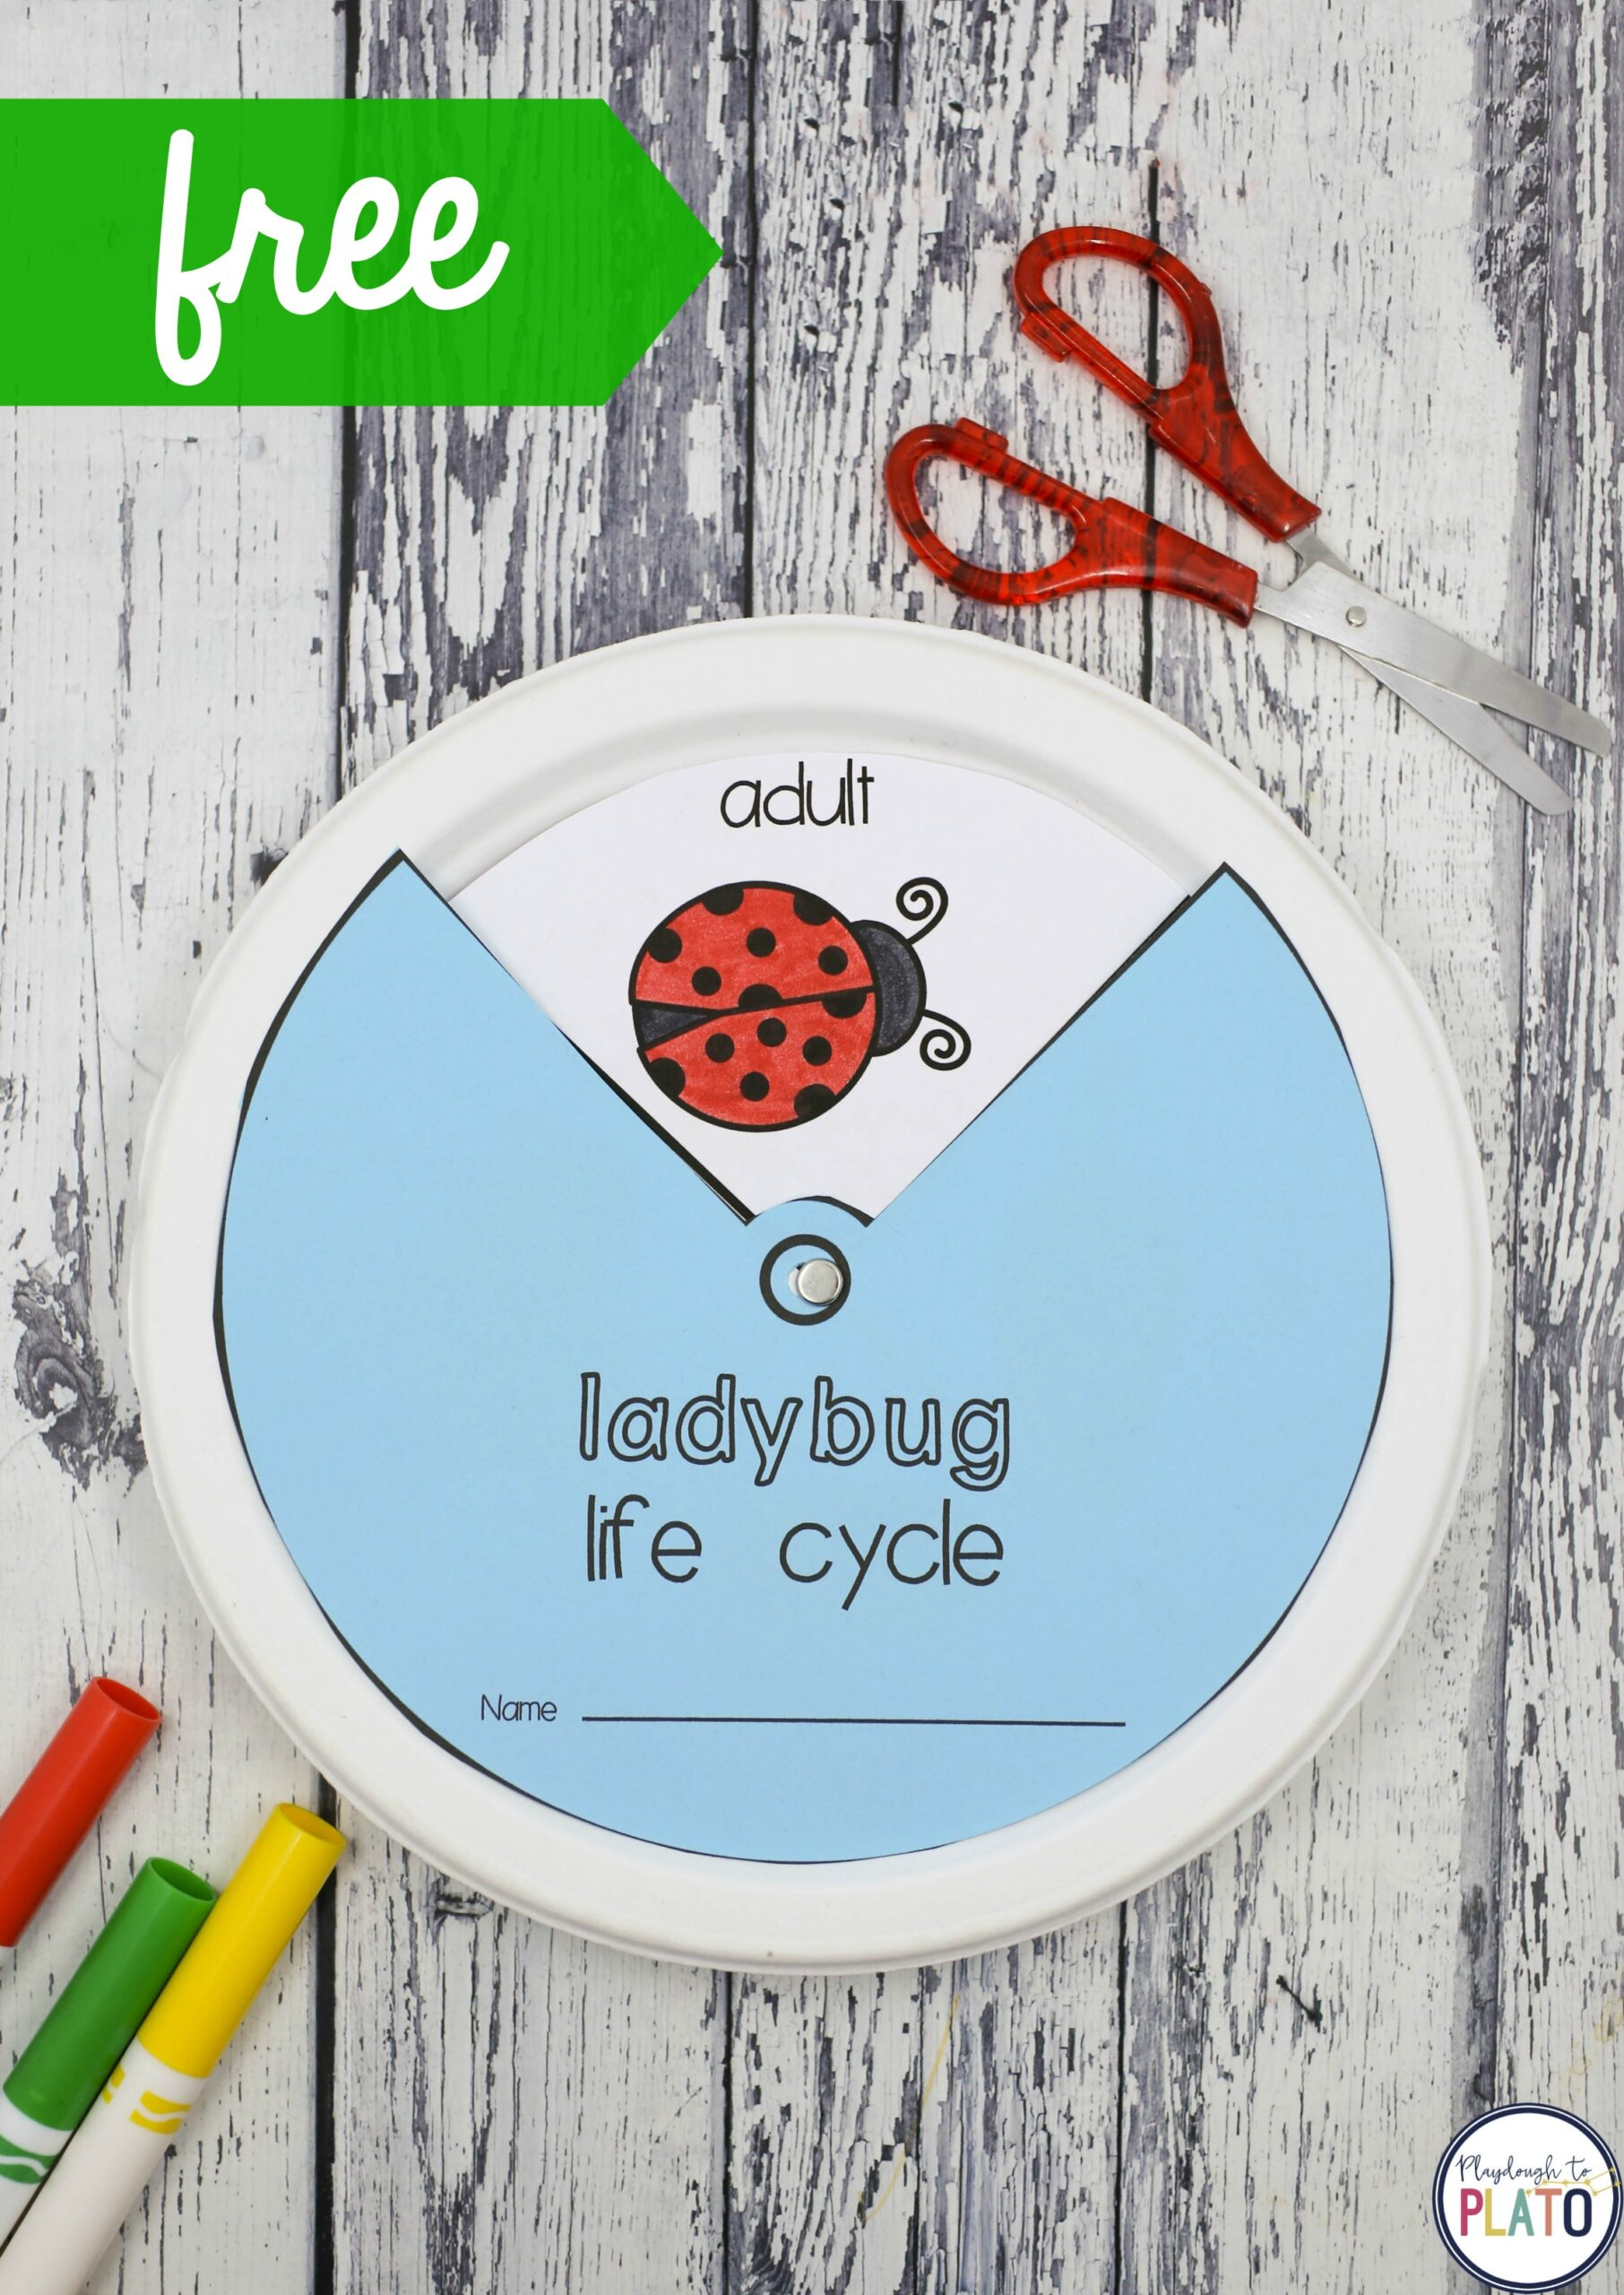 Ladybug Life Cycle Wheel